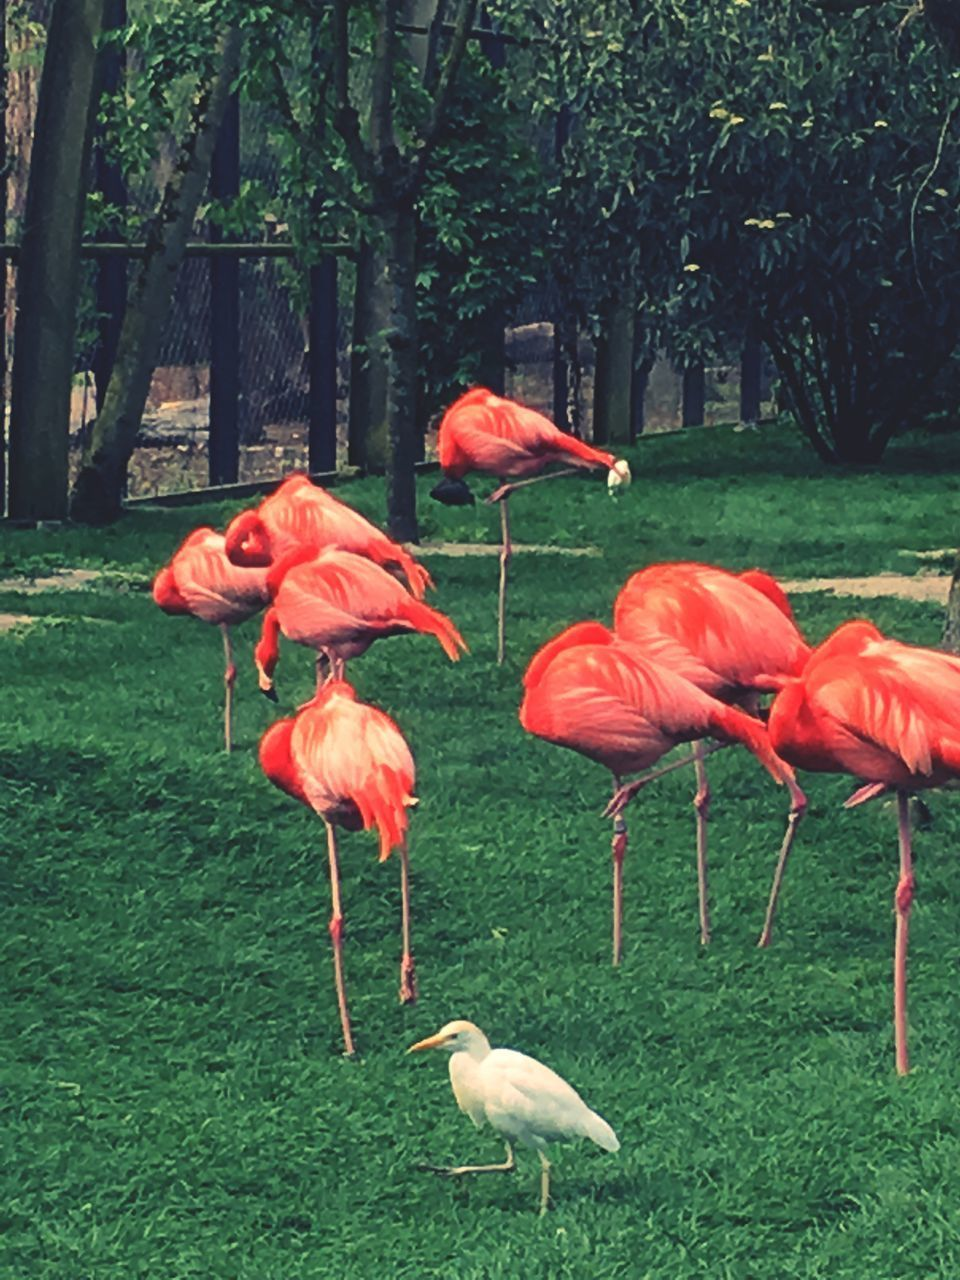 VIEW OF BIRDS ON GRASS